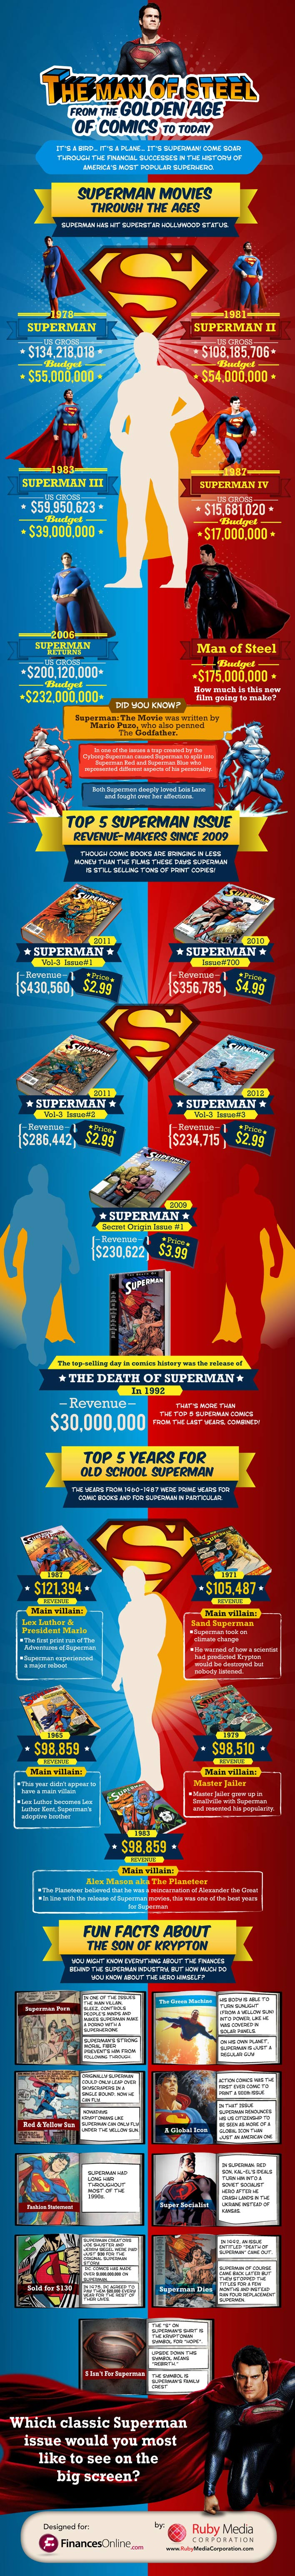 Superman Chronicles-Infographic